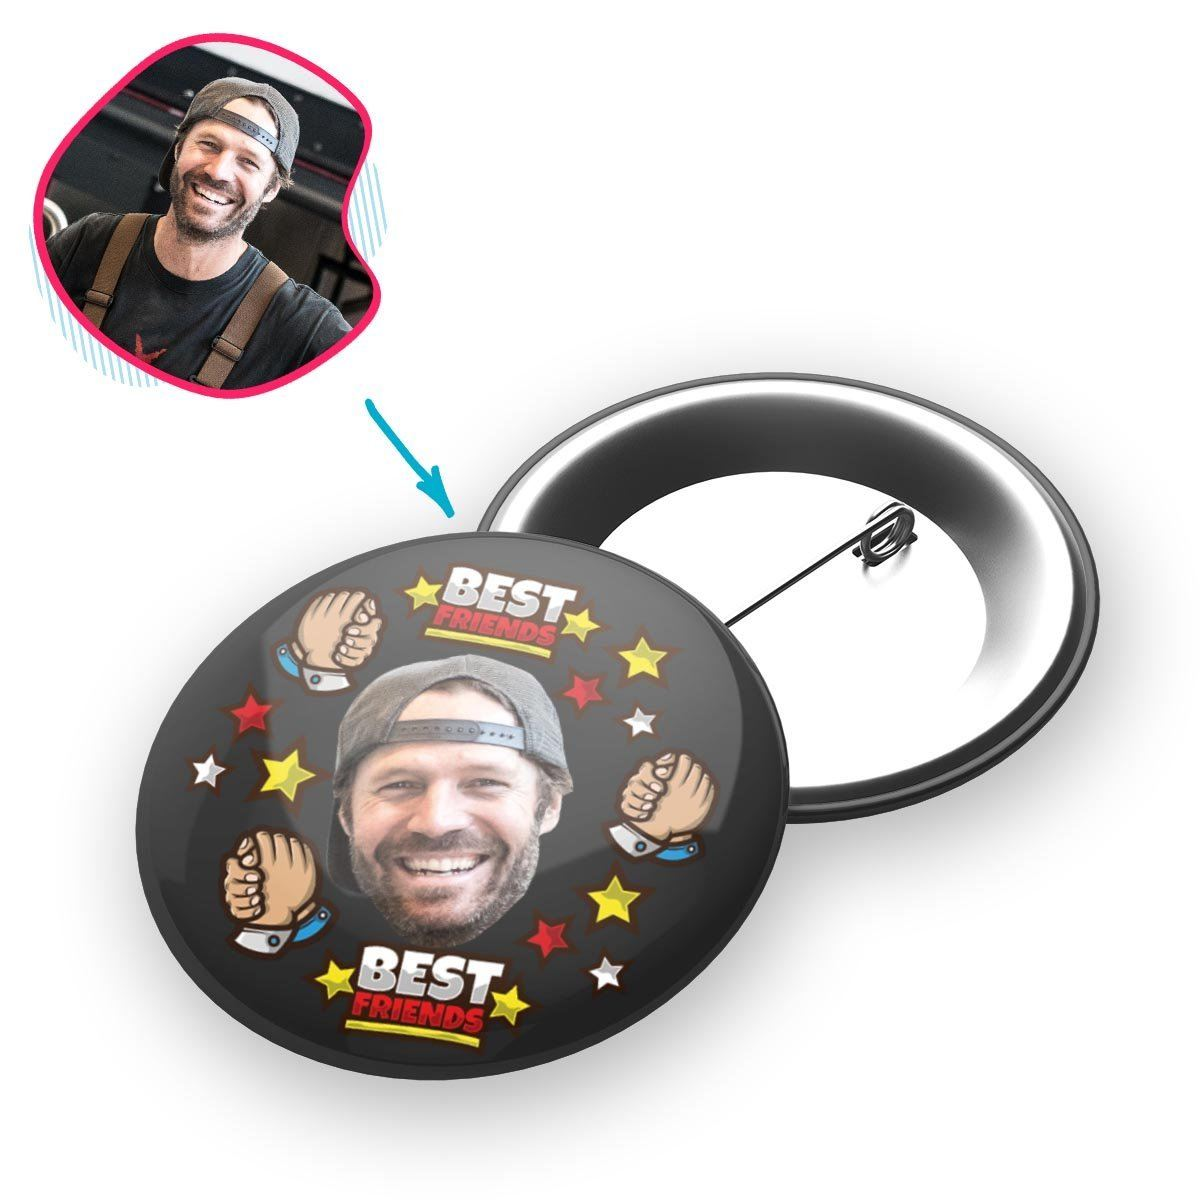 dark Best Friends pin personalized with photo of face printed on it